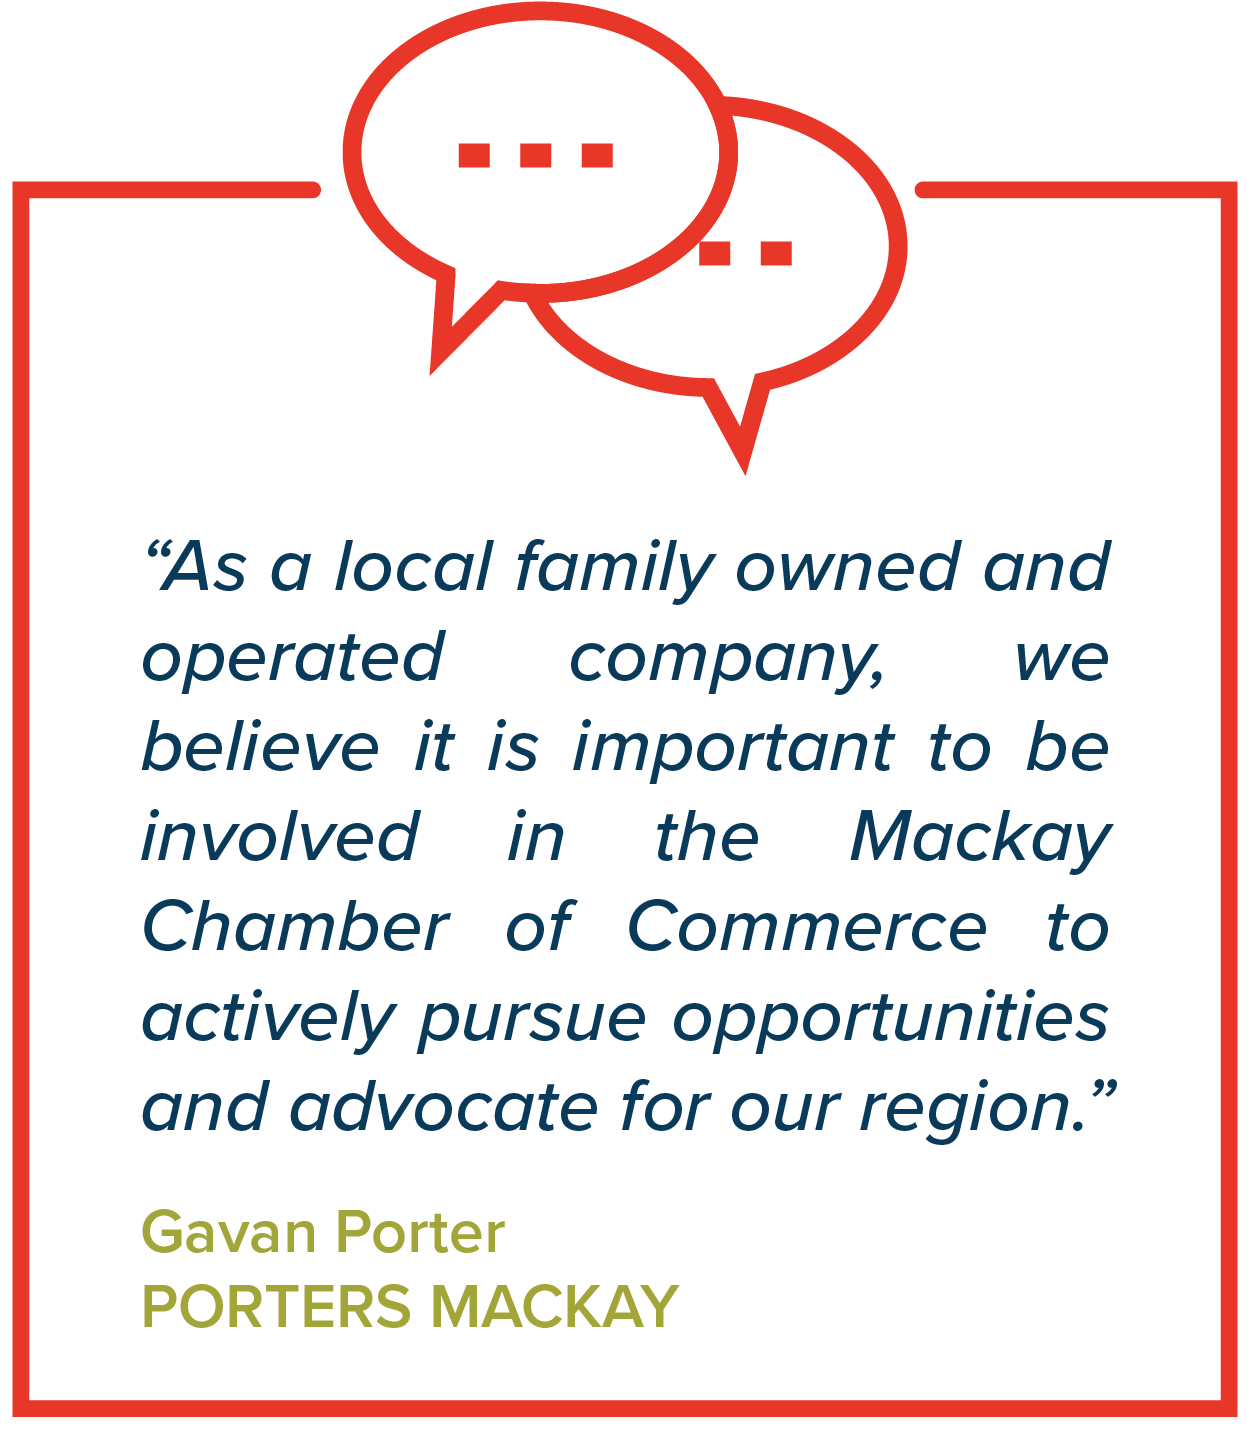 """""""As a local family owned and operated company, we believe it is important to be involved in the Mackay Chamber of Commerce to actively pursue opportunities and advocate for our region.""""   Gavan Porter, Porters Mackay"""